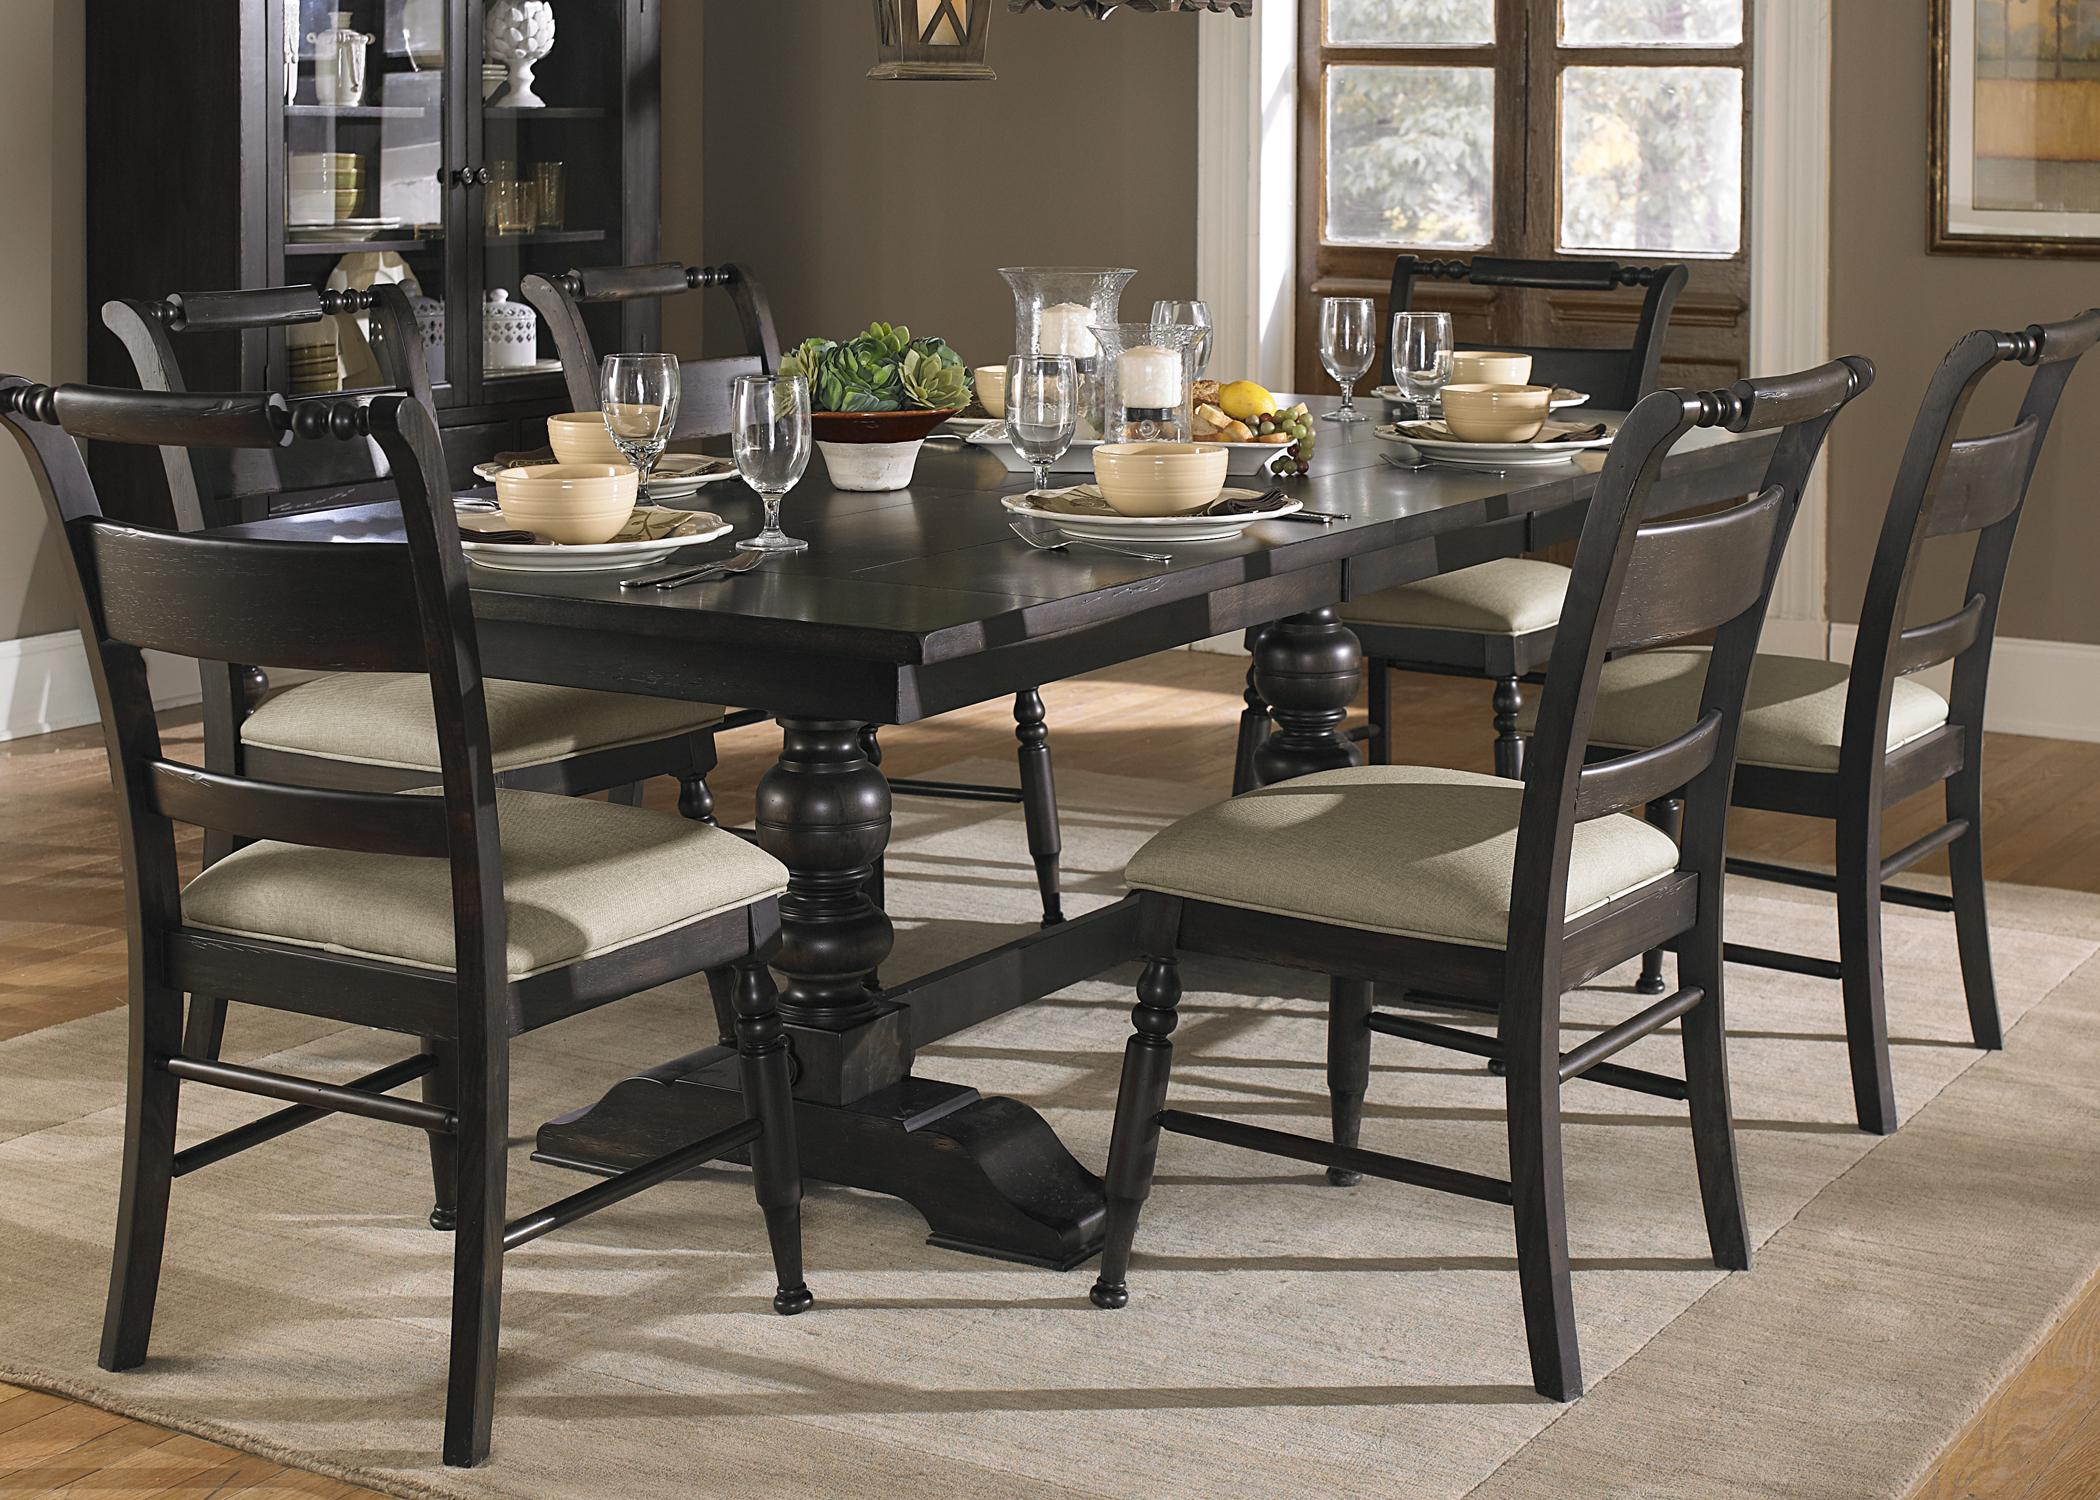 Liberty Furniture Whitney 661 CD 6TRS 6 Piece Trestle Table Set | Northeast  Factory Direct | Table U0026 Chair Set With Bench Cleveland, Eastlake,  Westlake, ...